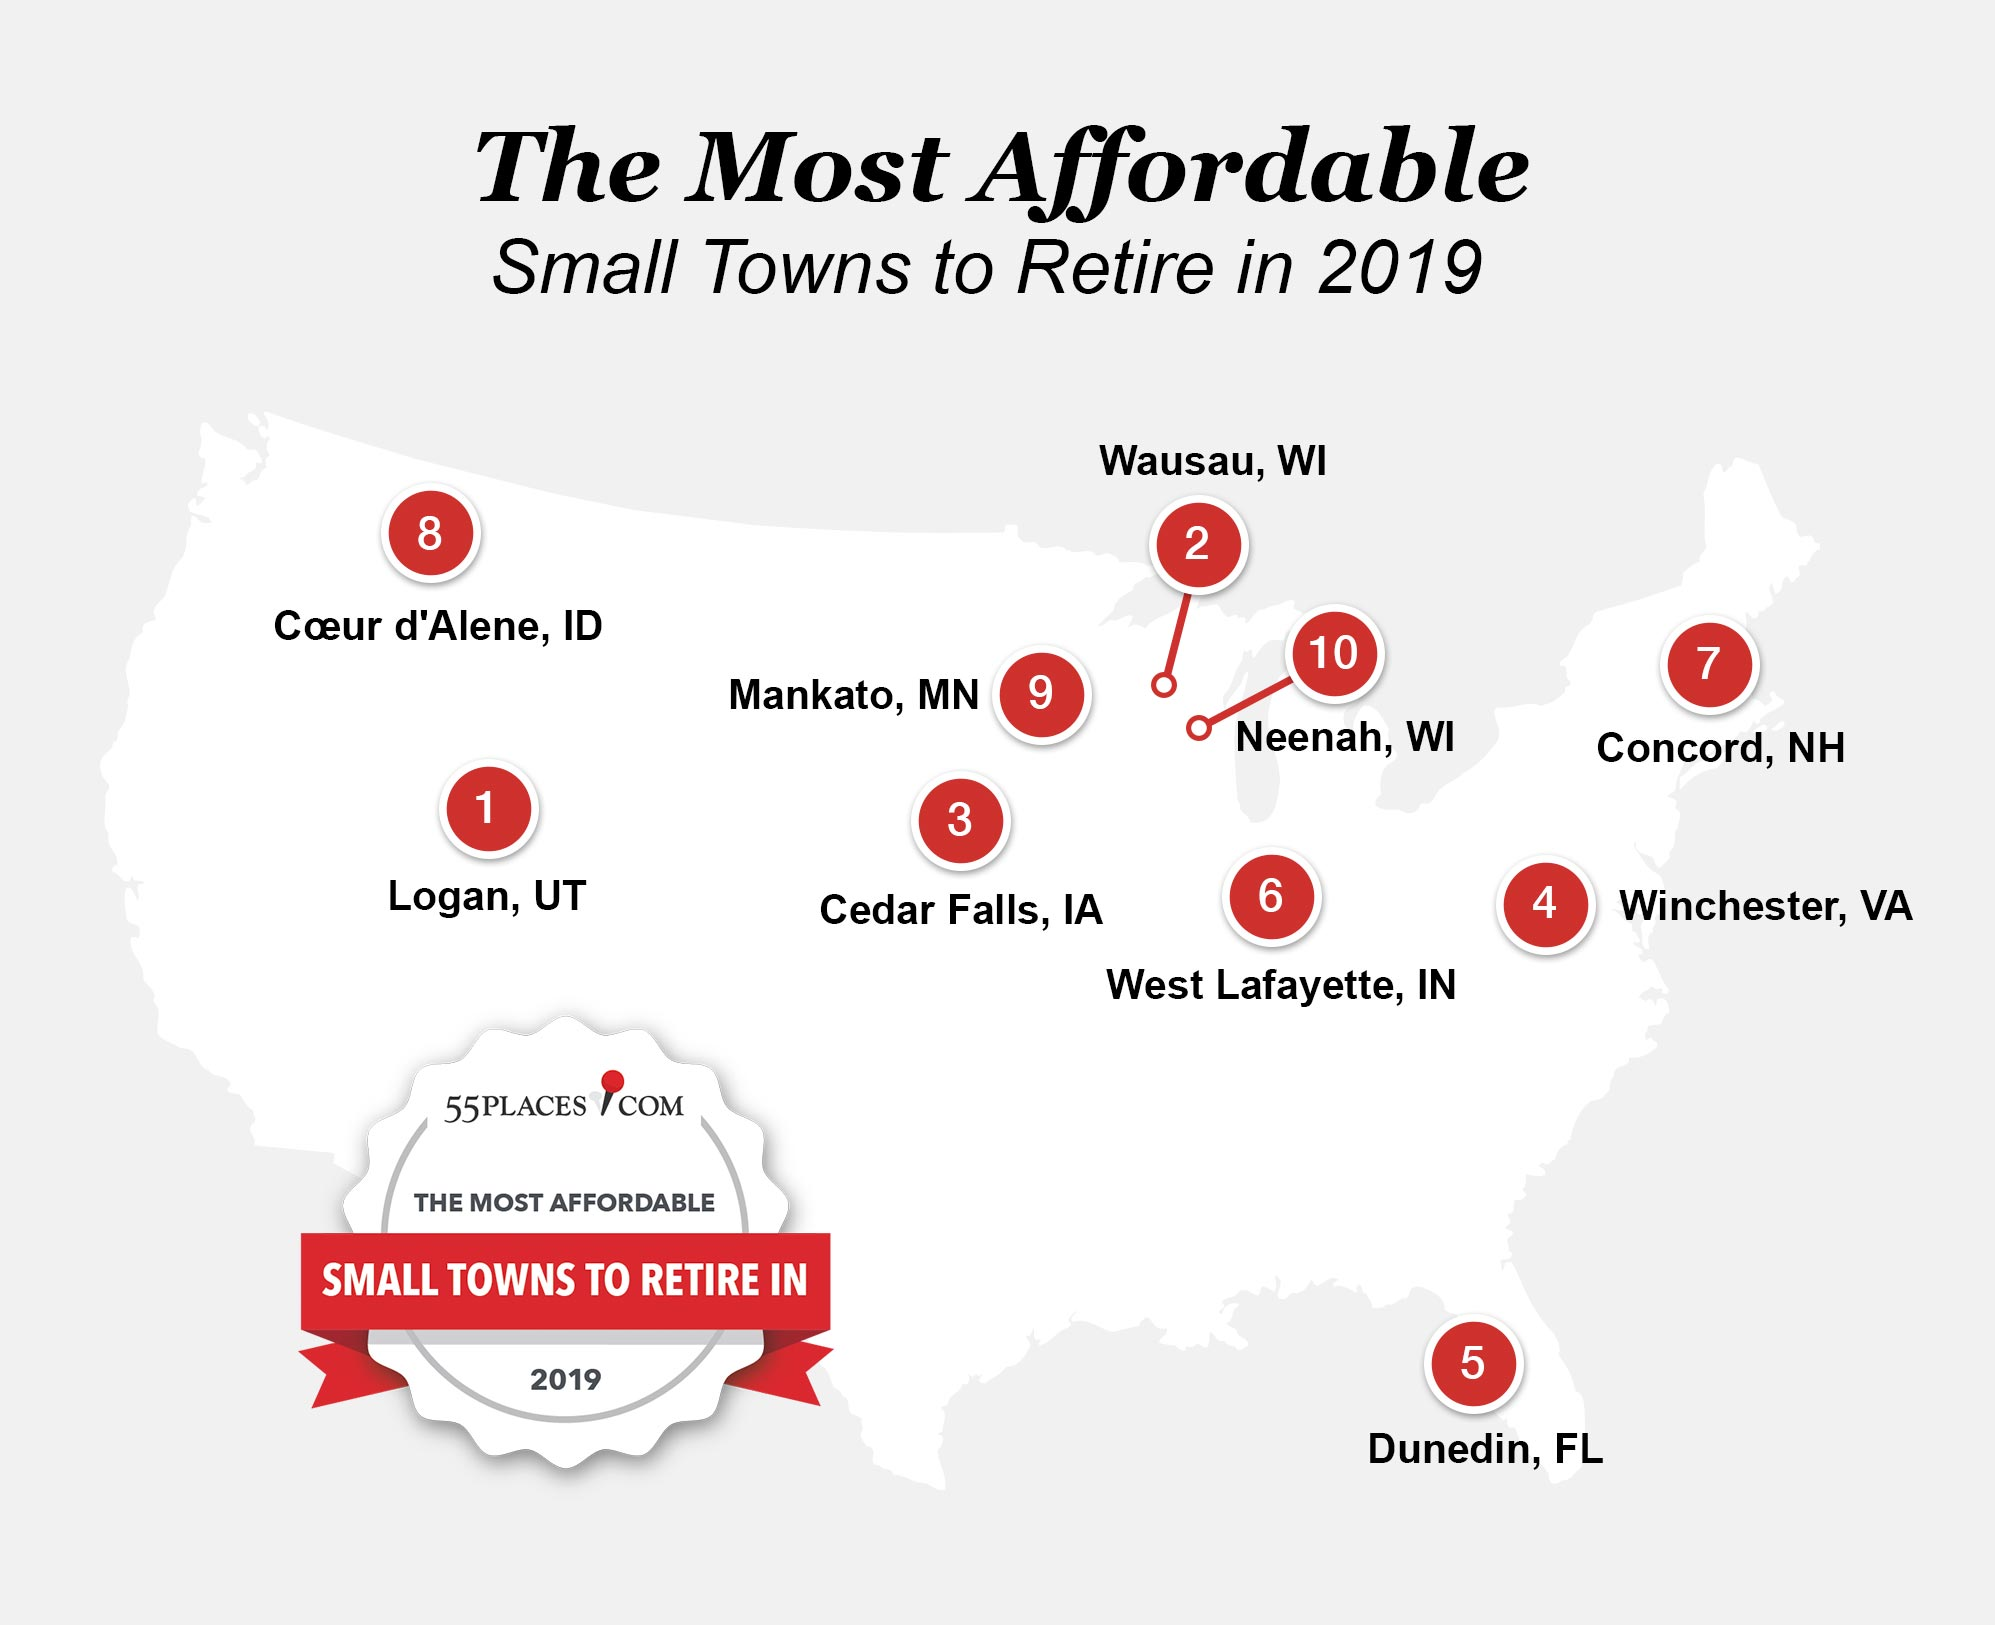 Map of the 10 most affordable small towns in the U.S.